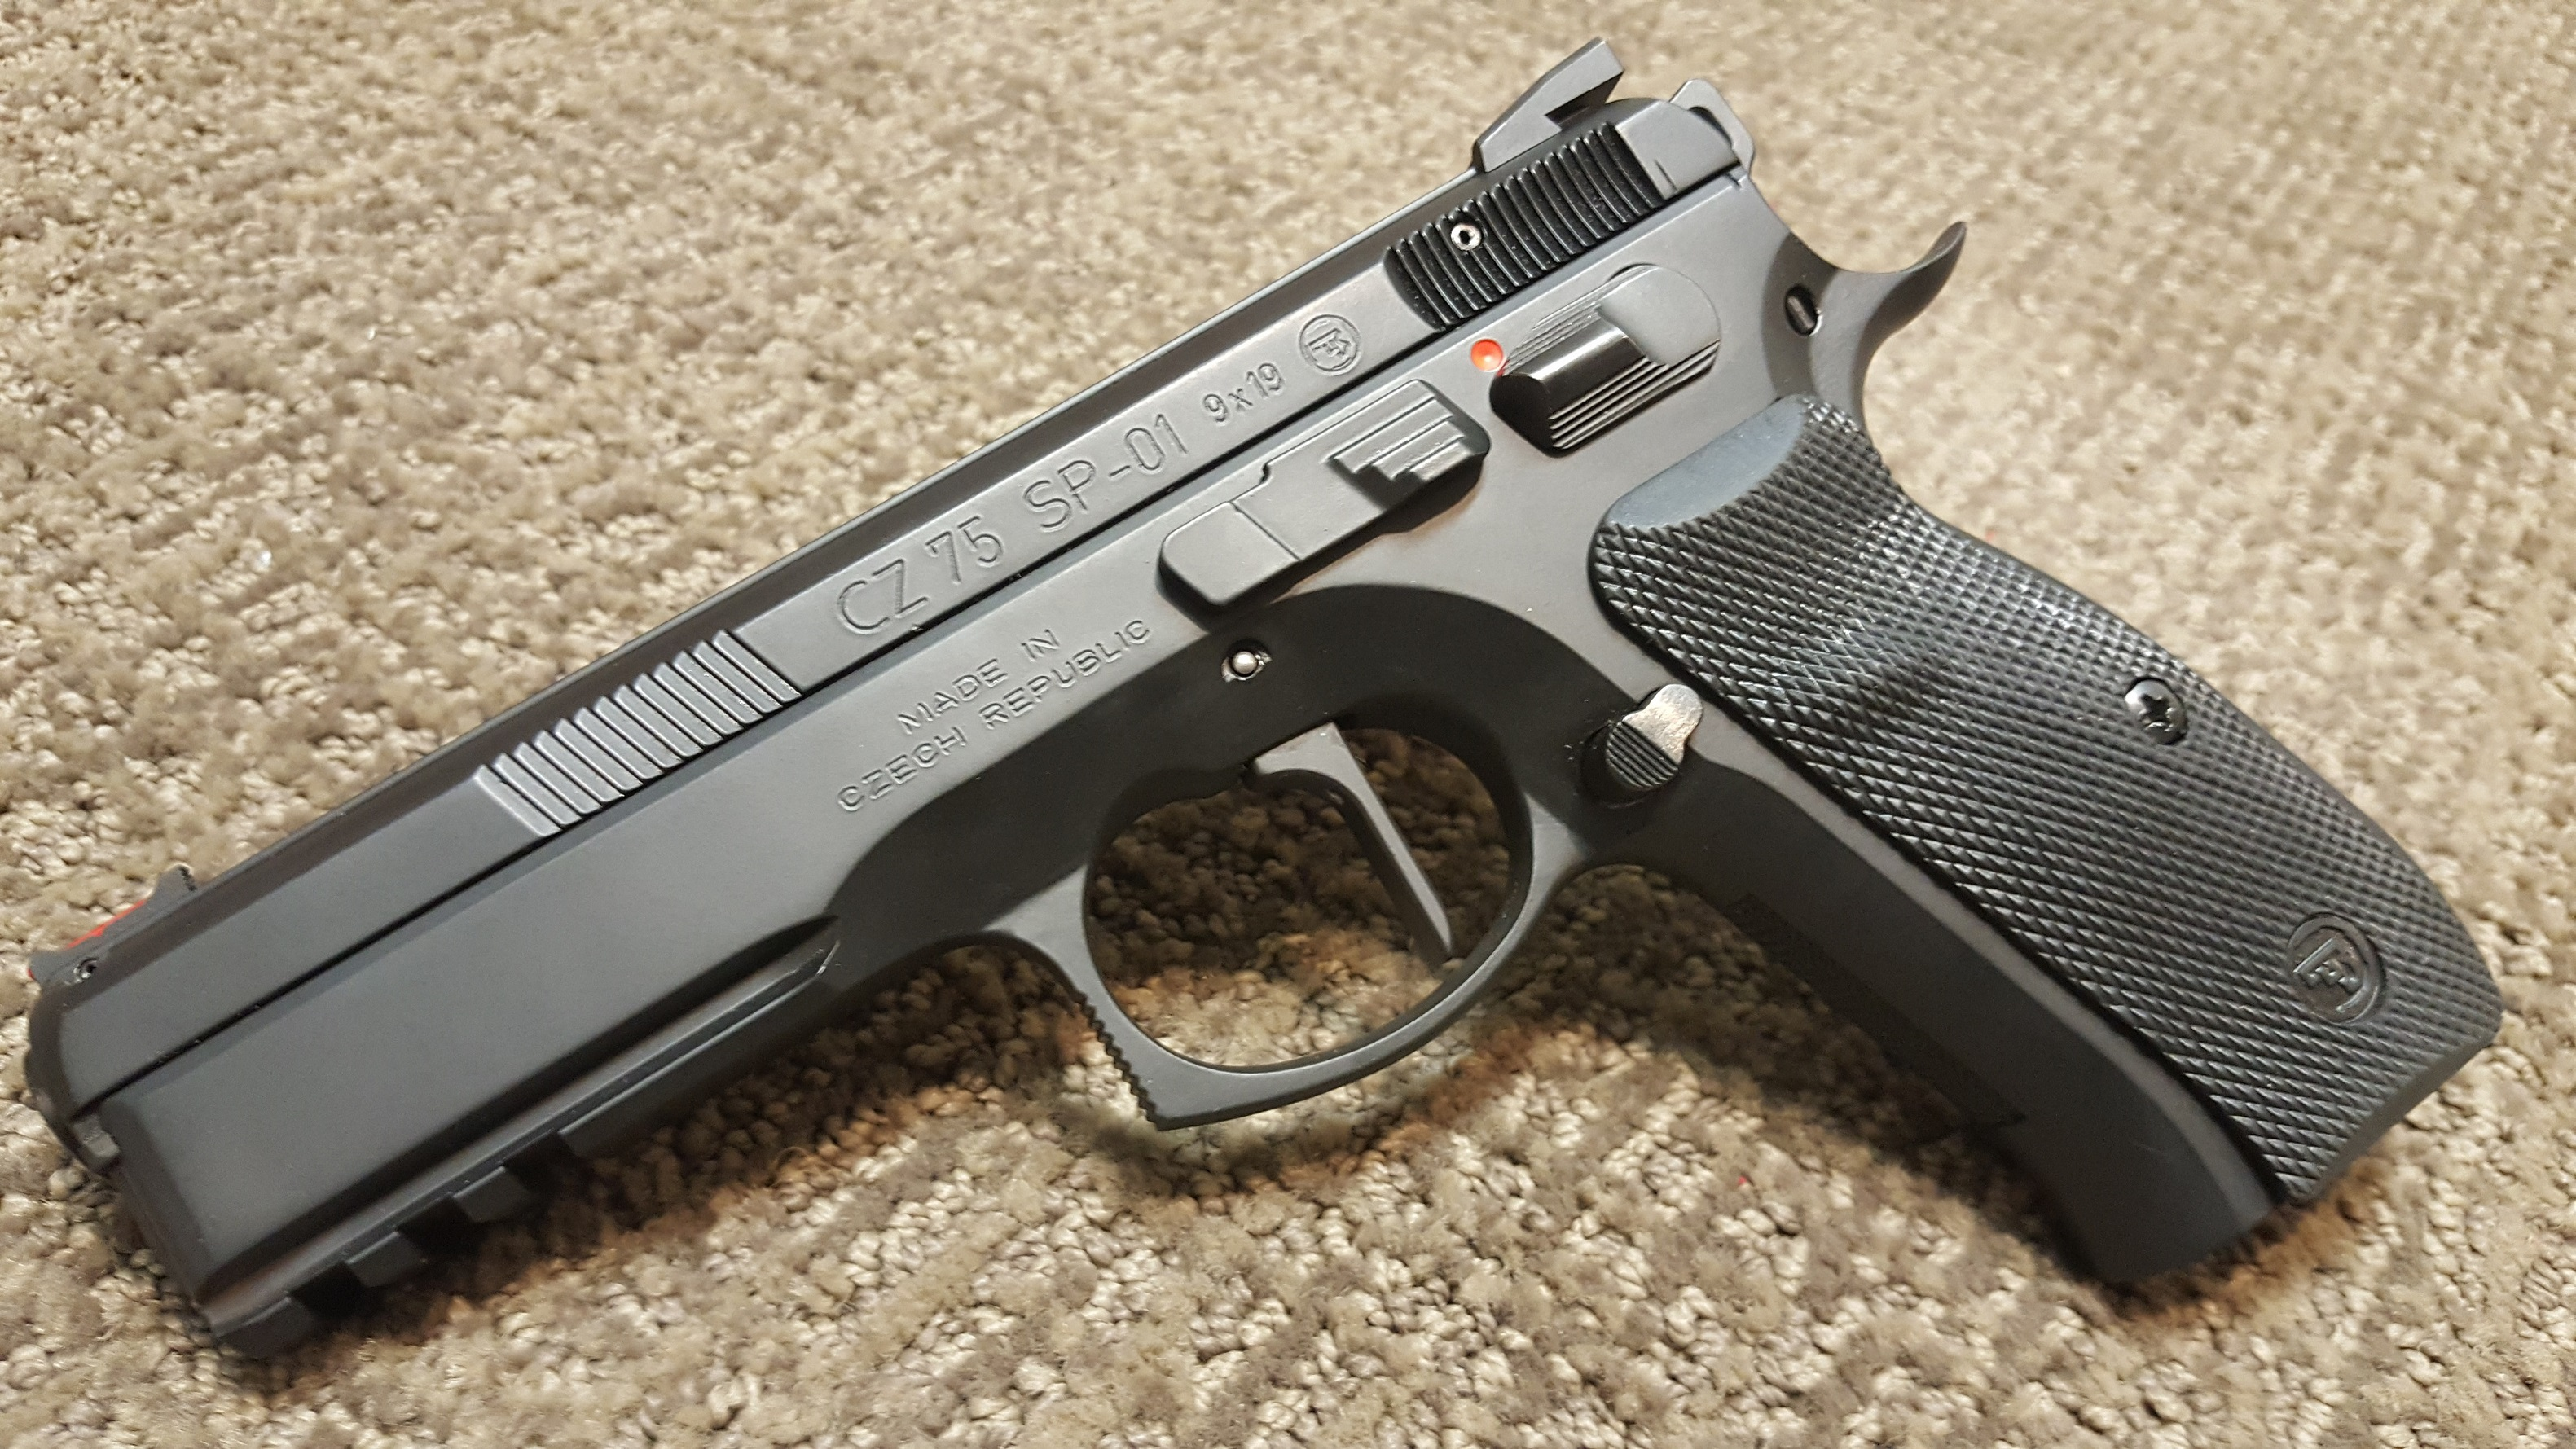 Converting a SP-01 to SAO, new 3 gun pistol - CZ - Brian